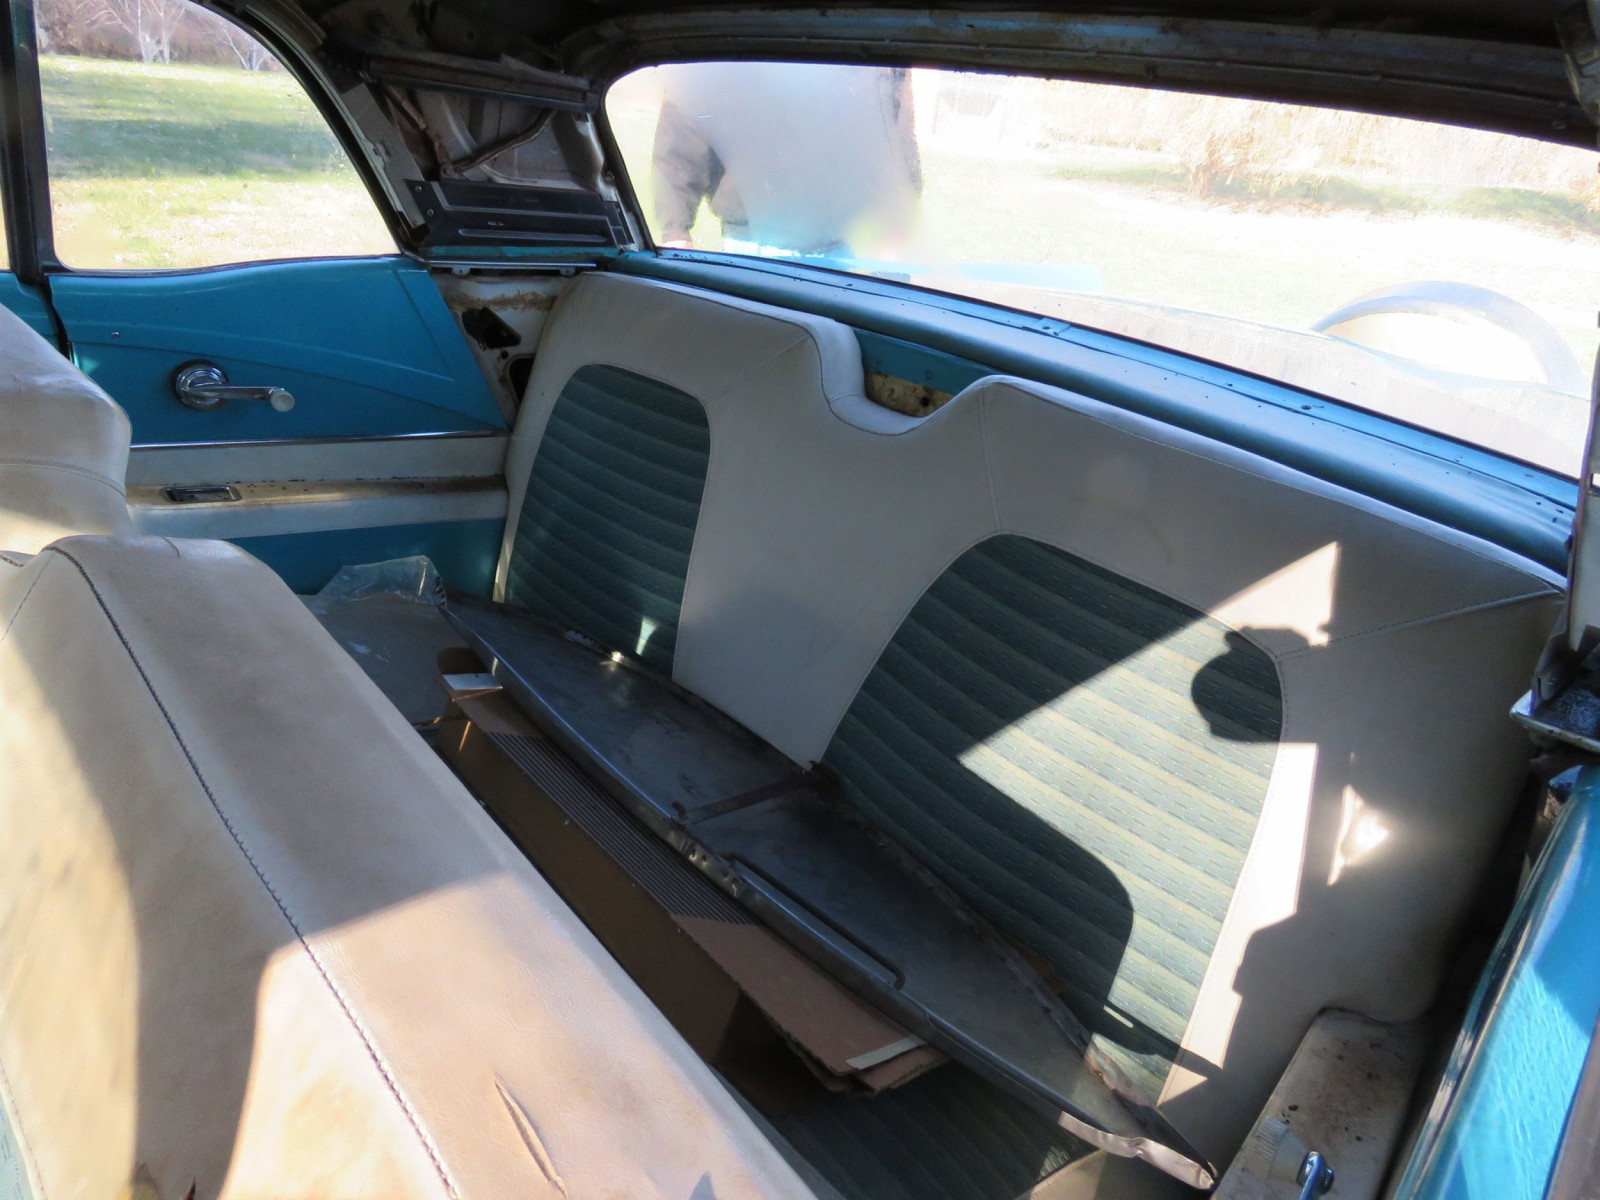 1958 Ford Fairlane 500 Starliner Retractable Hard Top - Image 12